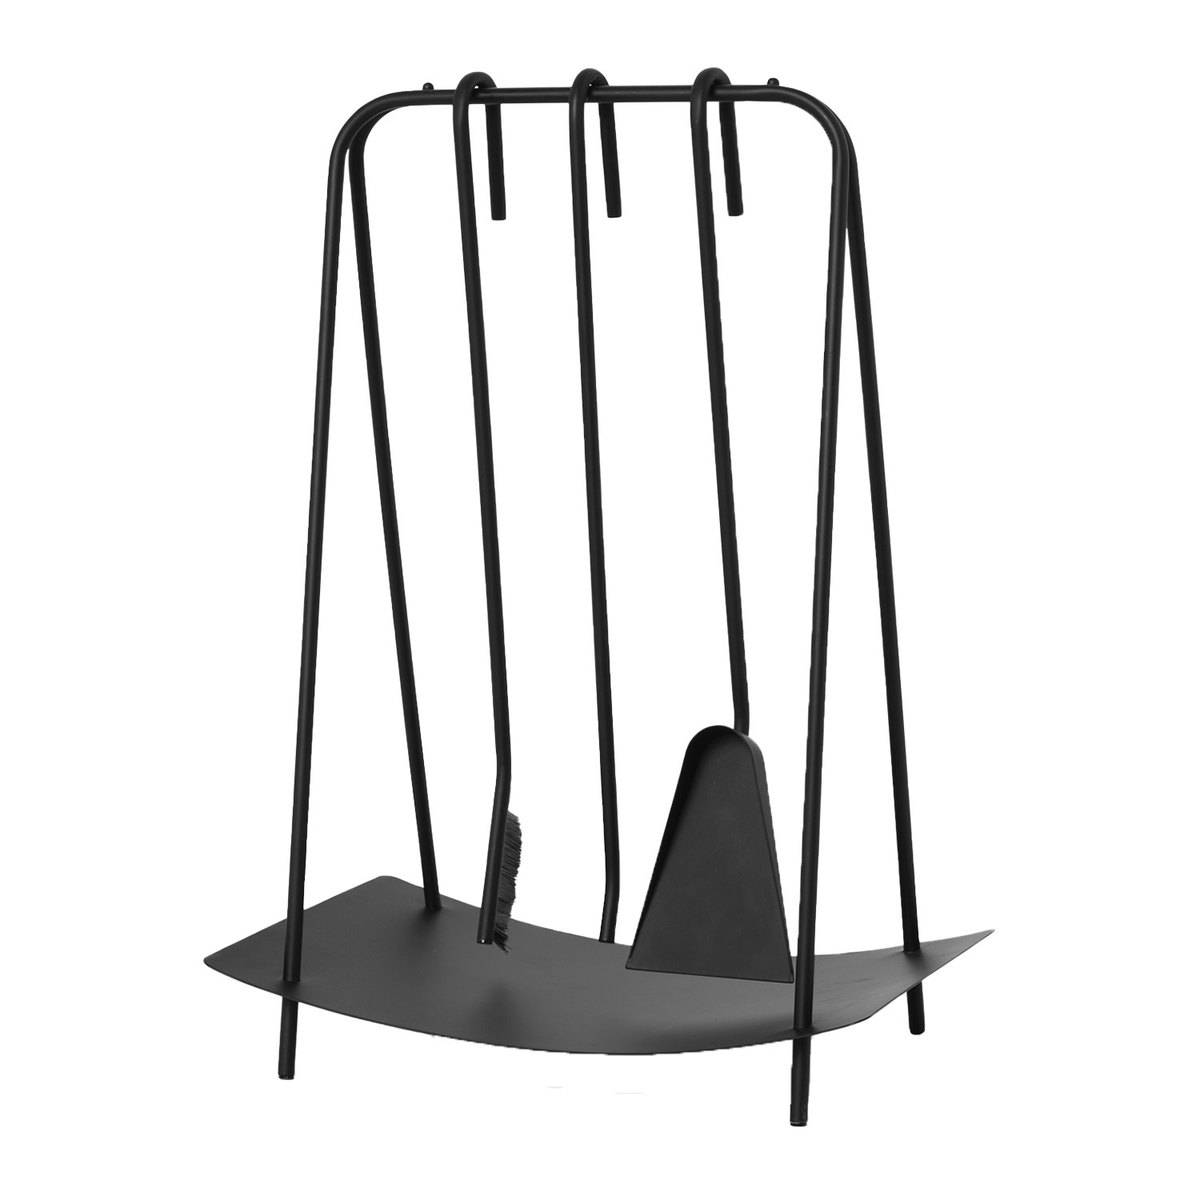 Ferm Living Port fireplace tools, black